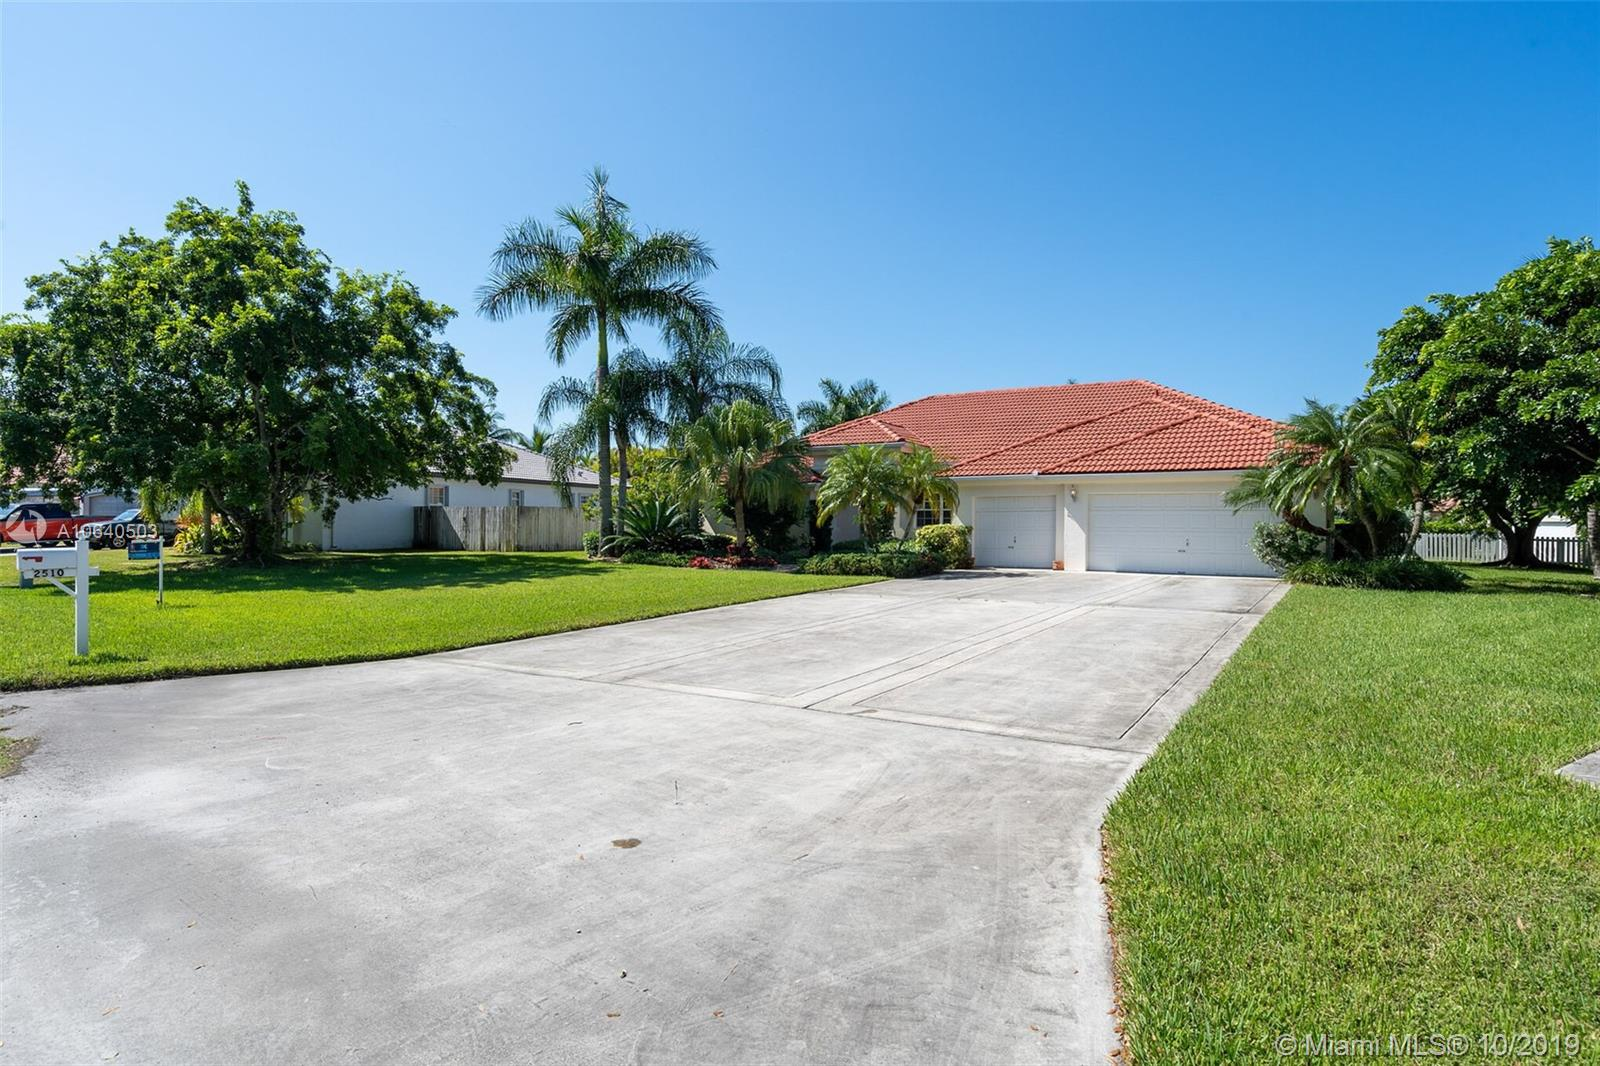 2510 Fairways Dr, Homestead, FL 33035 - Homestead, FL real estate listing